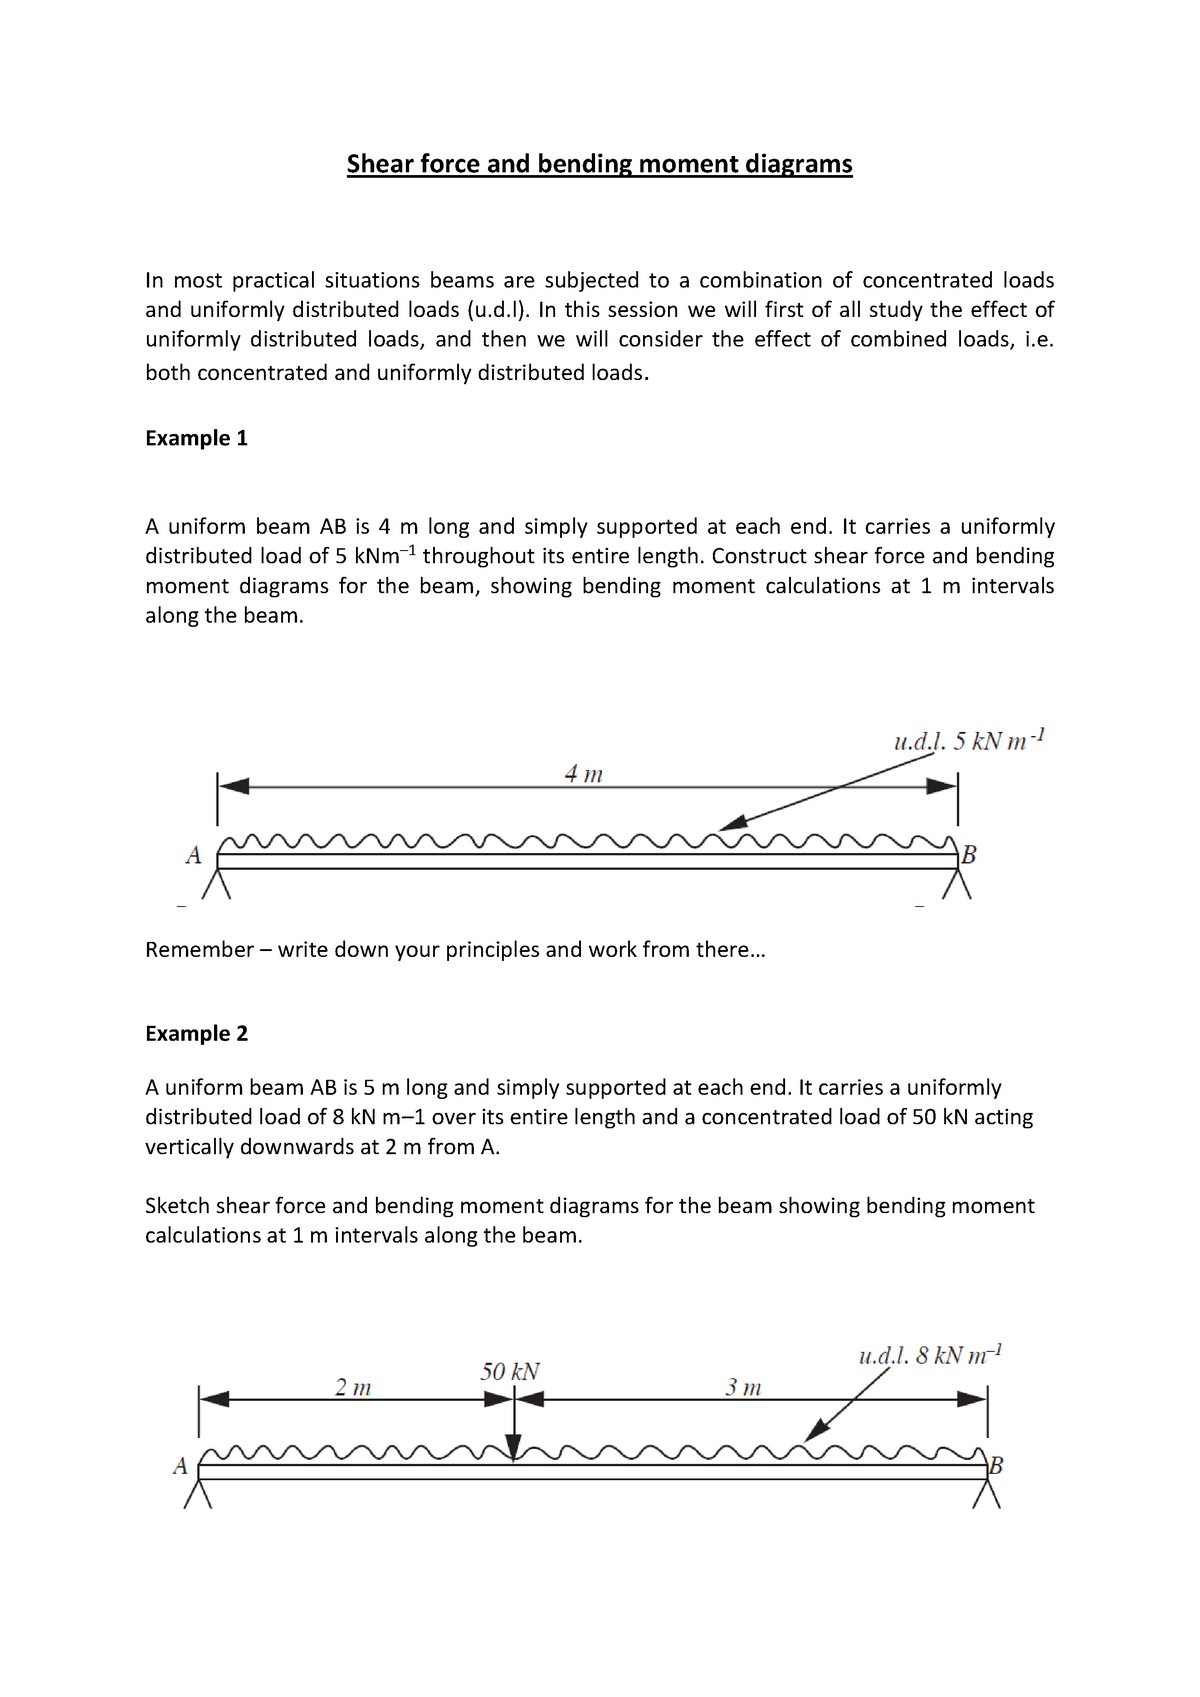 Draw The Shear Force And Bending Moment Diagrams Of The Beam Ab